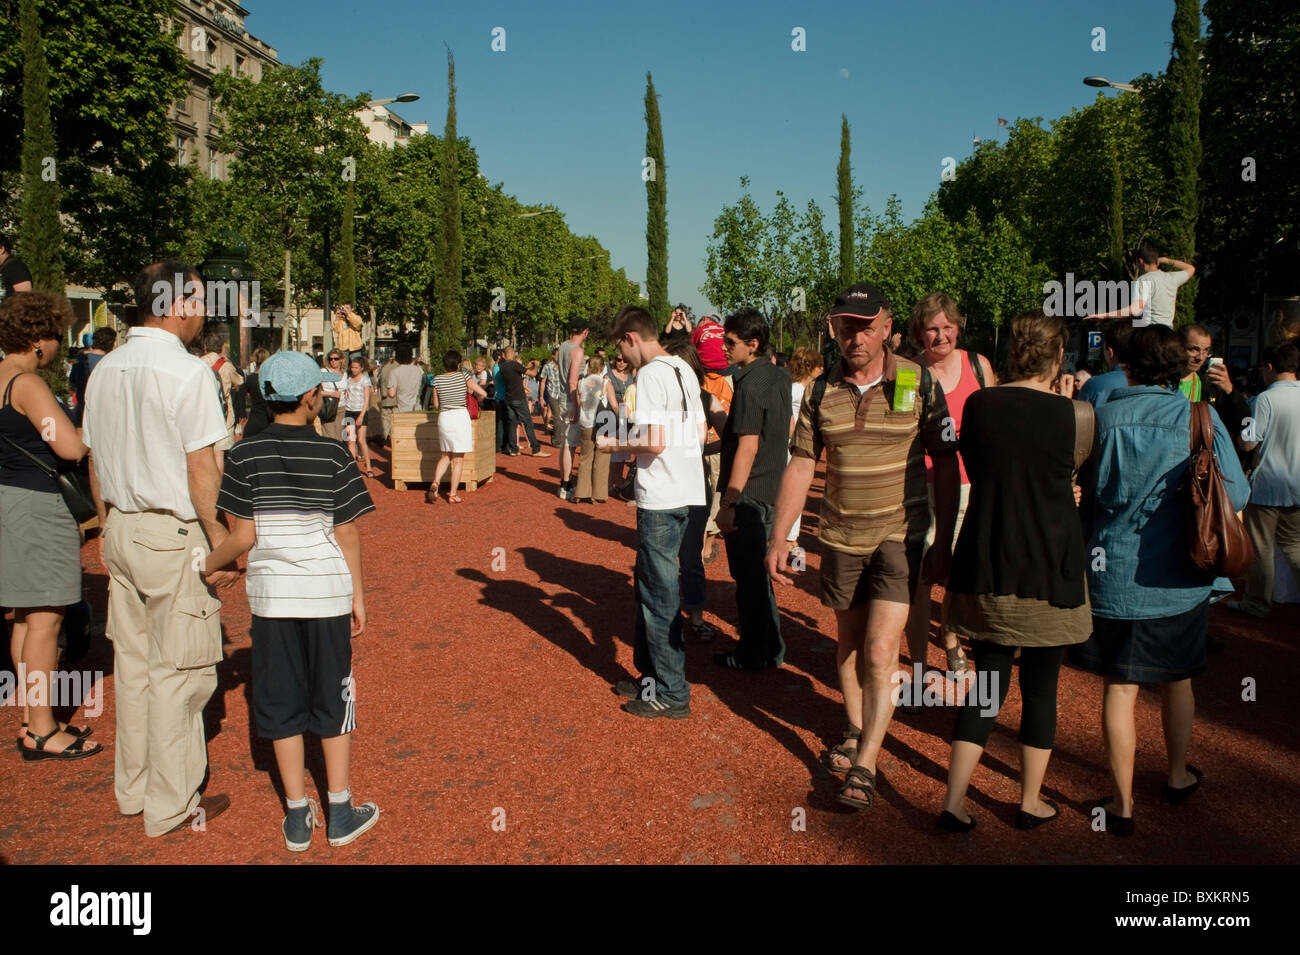 Adults Visiting Paris, France, Garden Festival, Champs-Ely-sees Farmer's Event Stock Photo